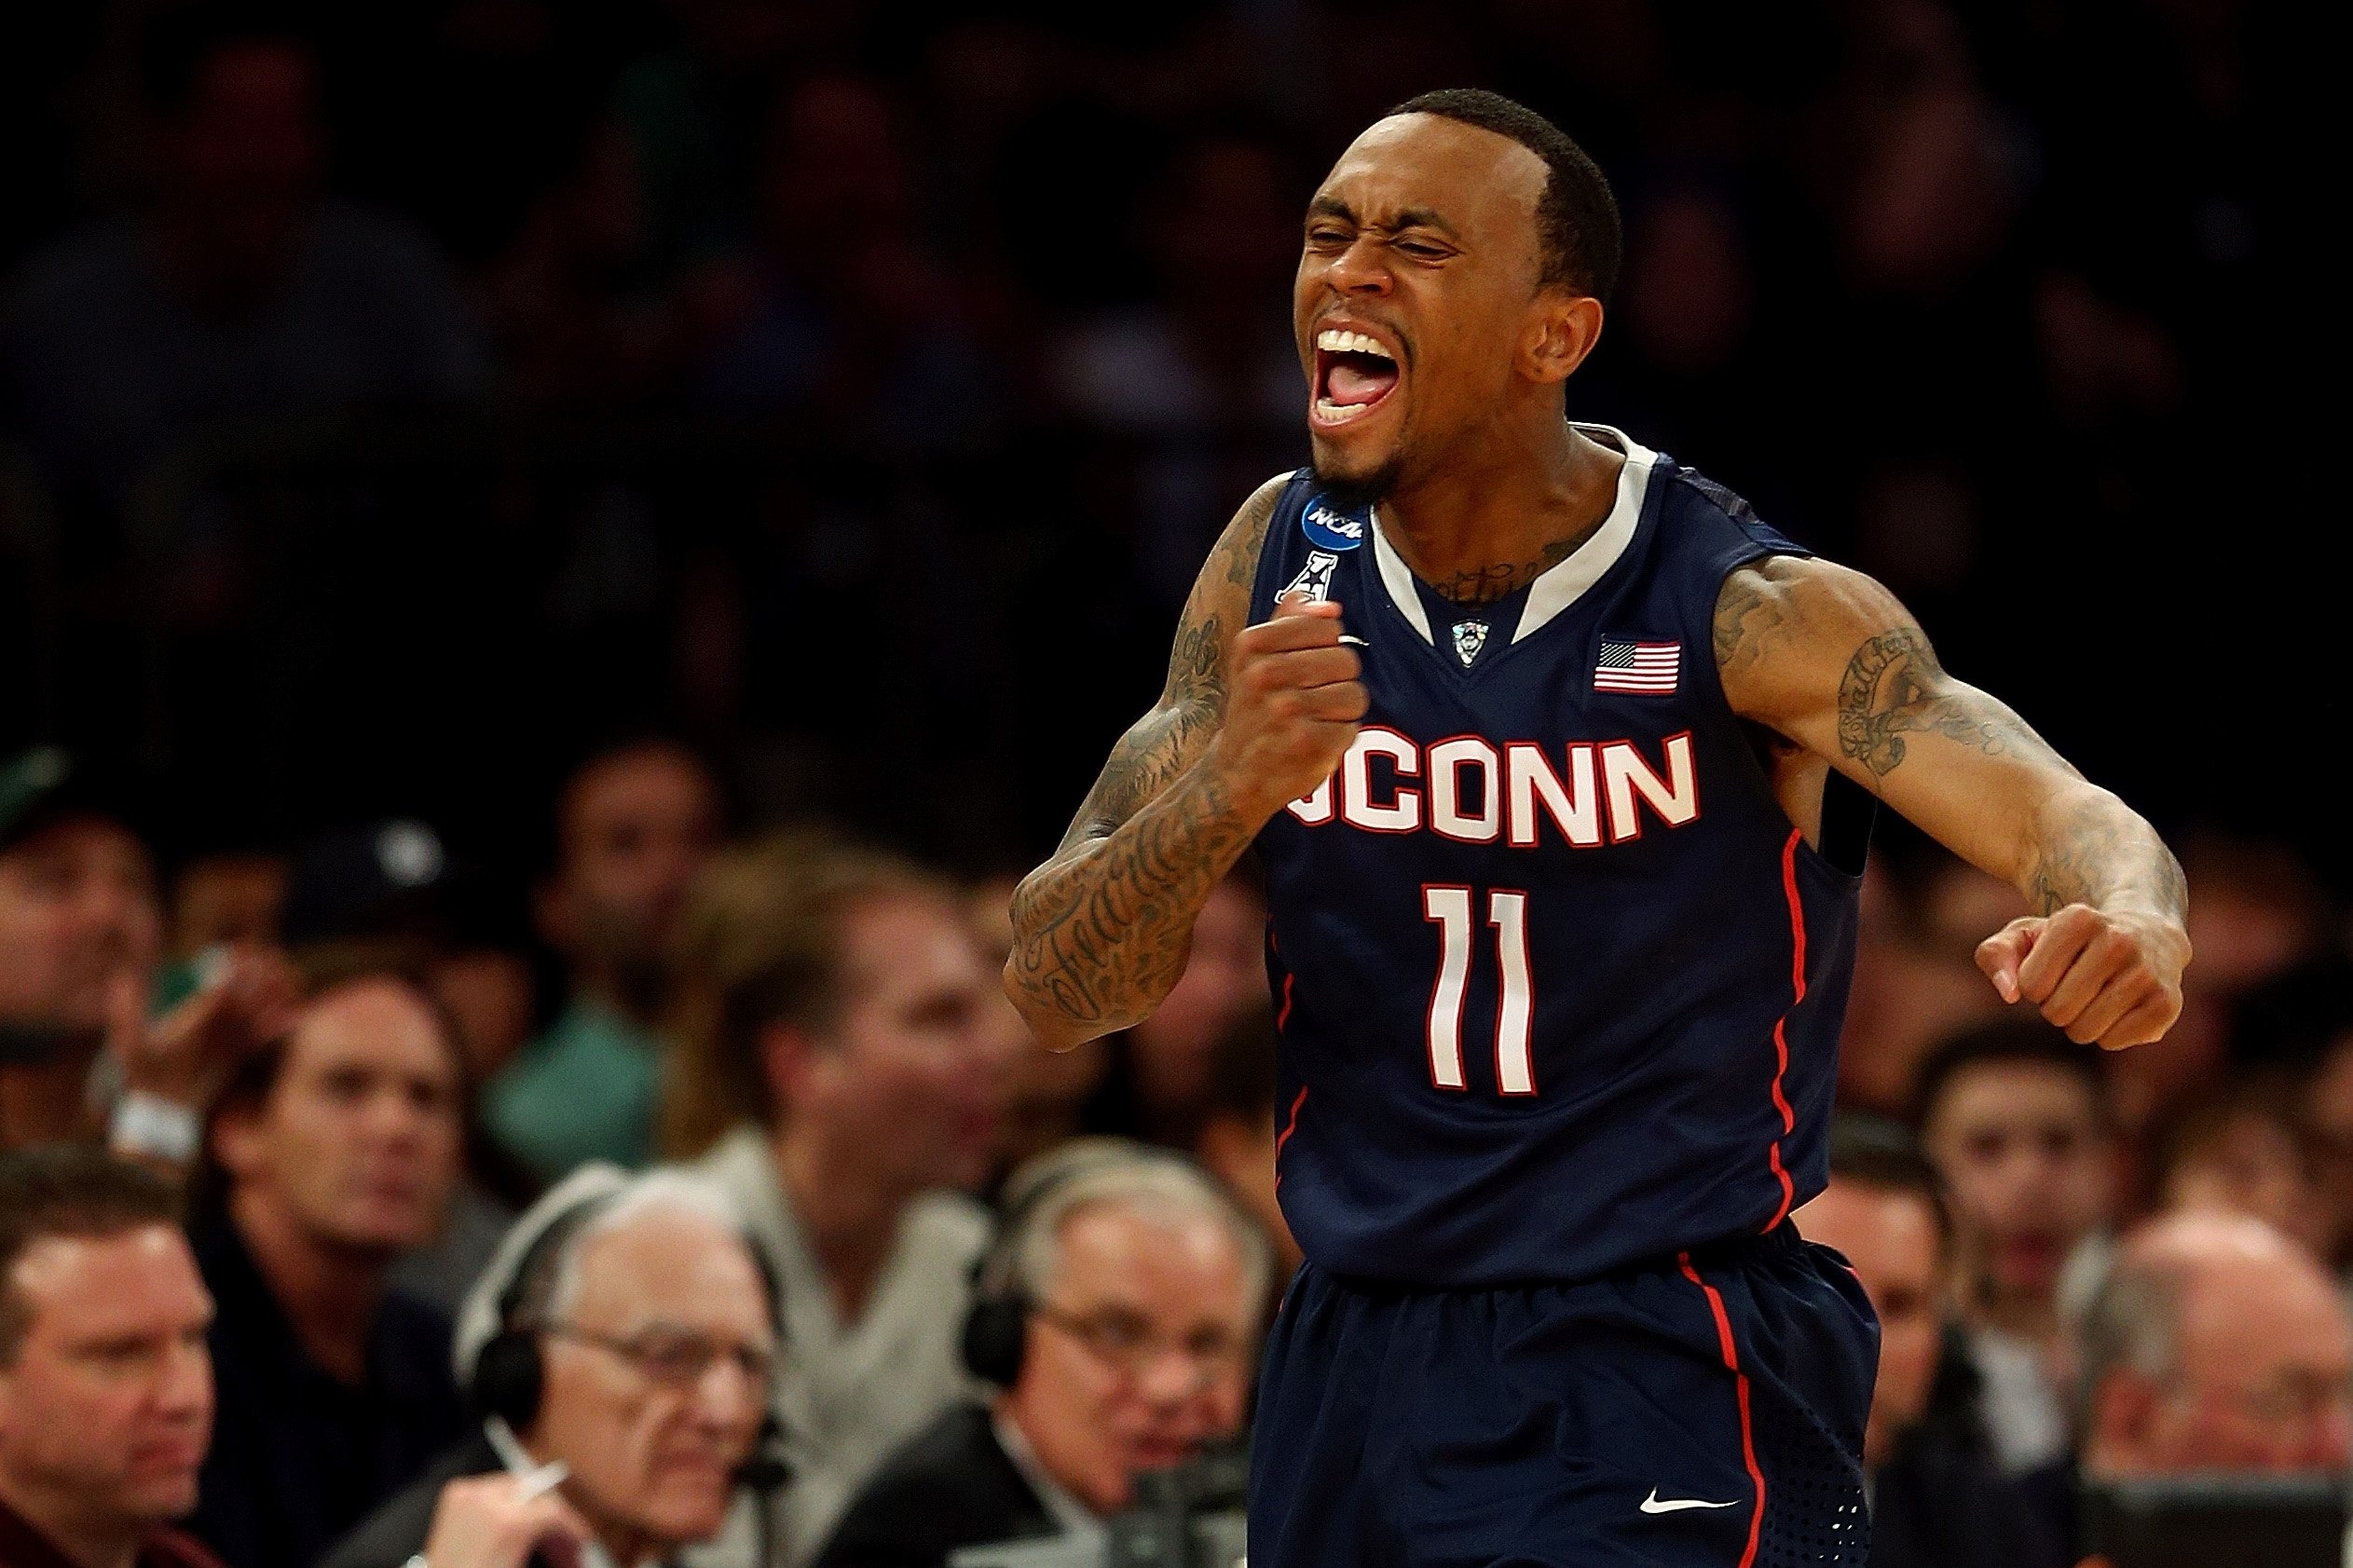 Ryan Boatright of the Connecticut Huskies reacts after a turnover by the Michigan State Spartans in the second half of the East Regional Final of the 2014 NCAA Men's Basketball Tournament at Madison Square Garden on March 30, 2014 in New York City.